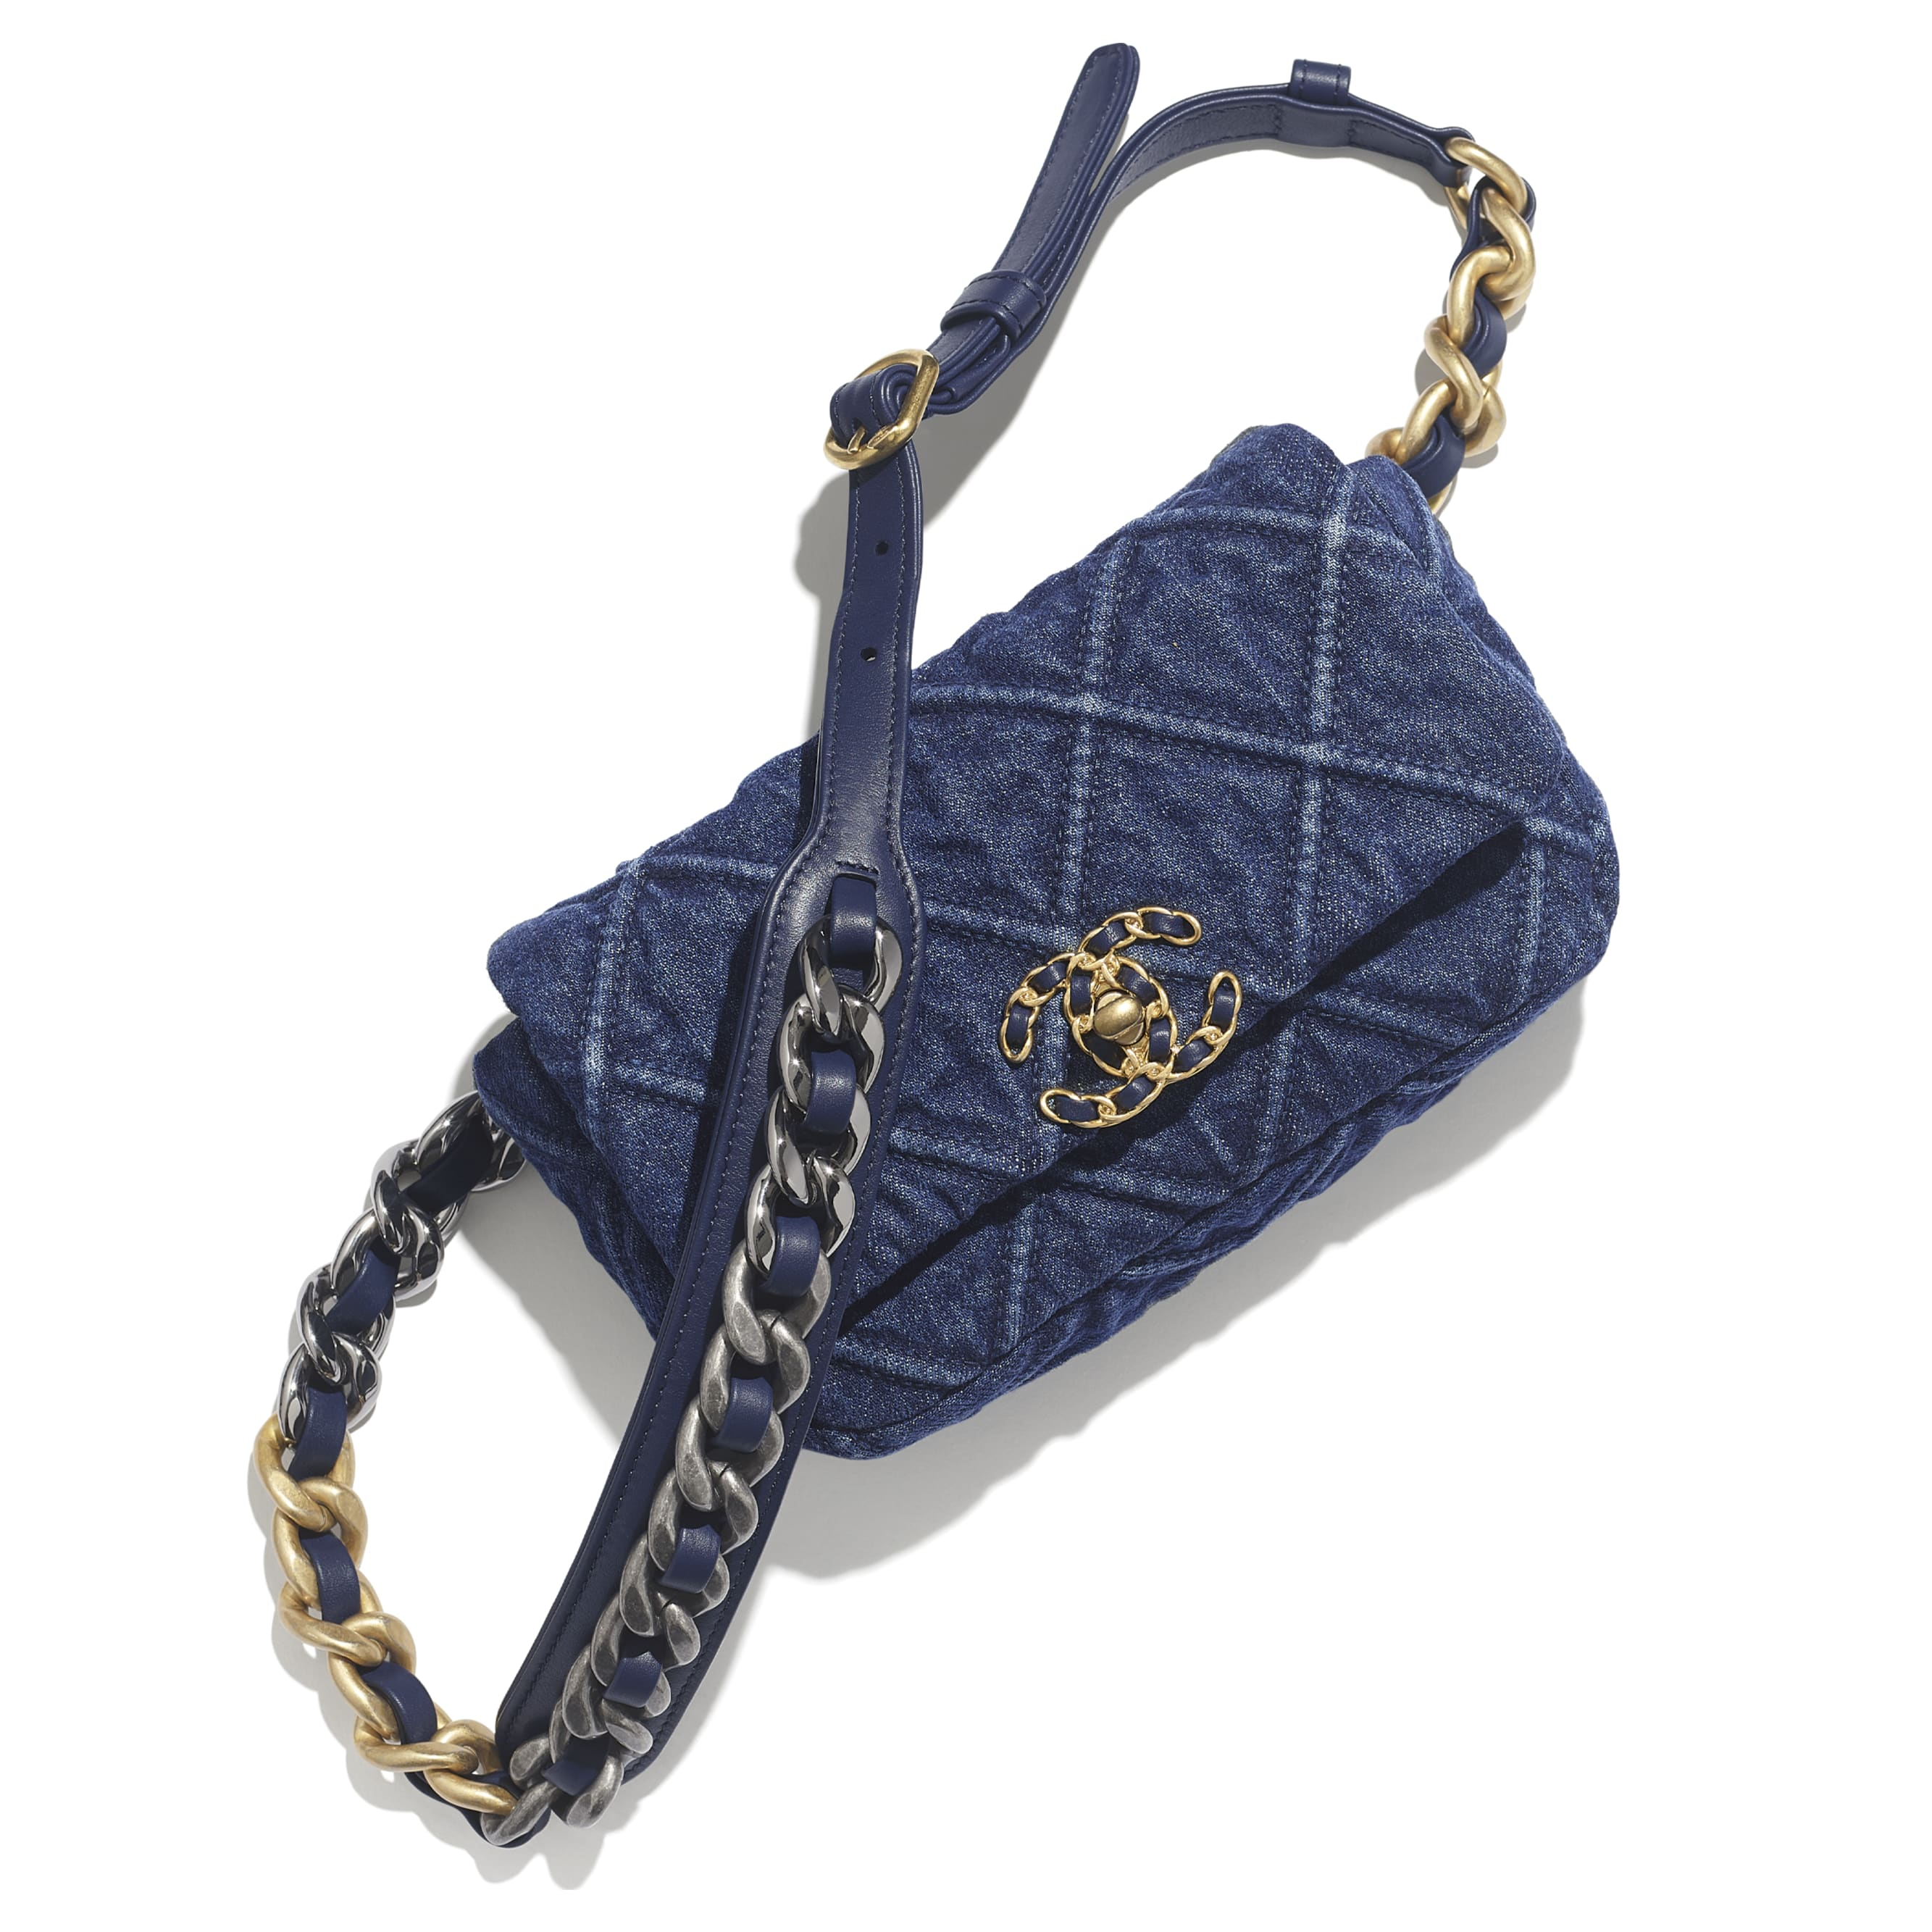 CHANEL 19 Waist Bag - Blue - Denim, Gold-Tone, Silver-Tone & Ruthenium-Finish Metal - CHANEL - Extra view - see standard sized version